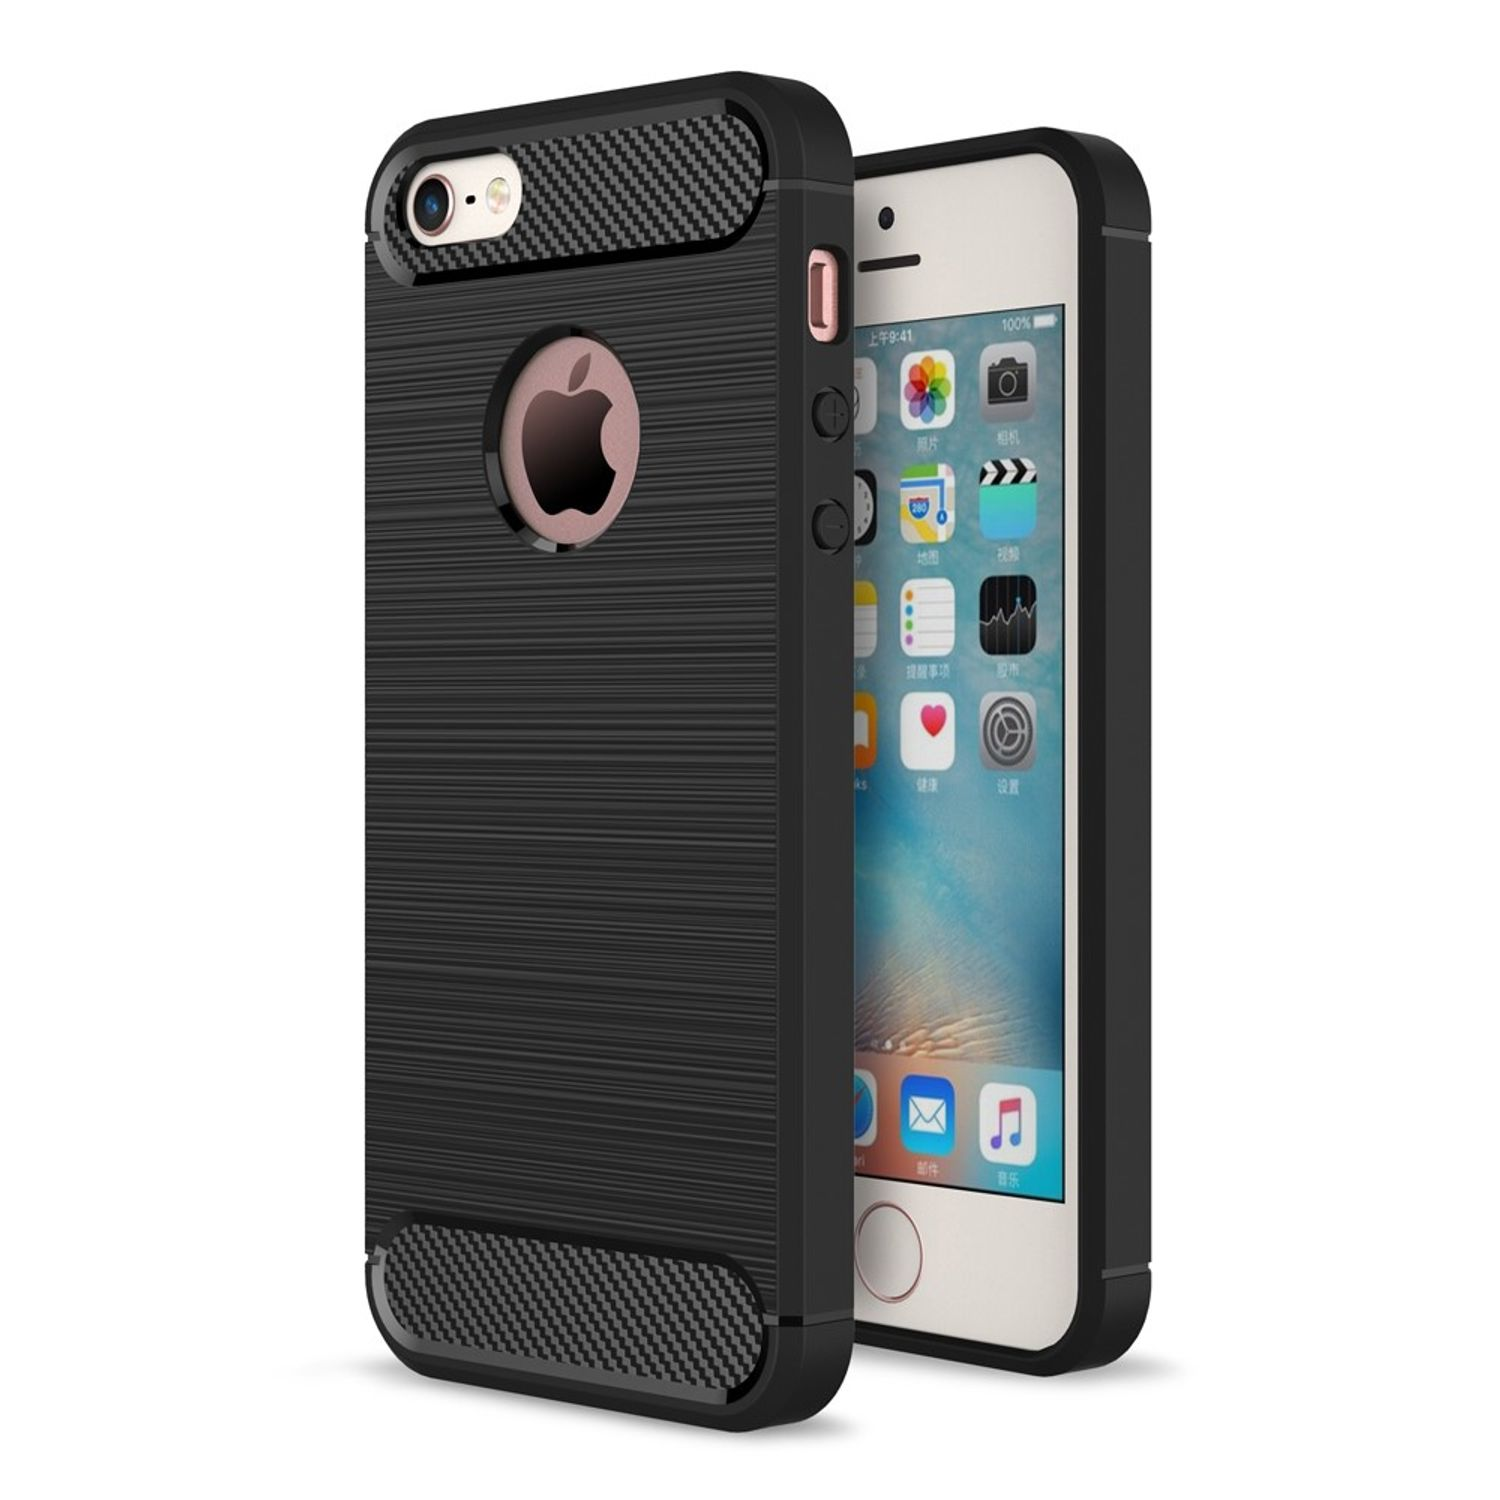 apple iphone 5 5s se tpu case carbon fiber optik brushed schutz h lle schwarz ebay. Black Bedroom Furniture Sets. Home Design Ideas